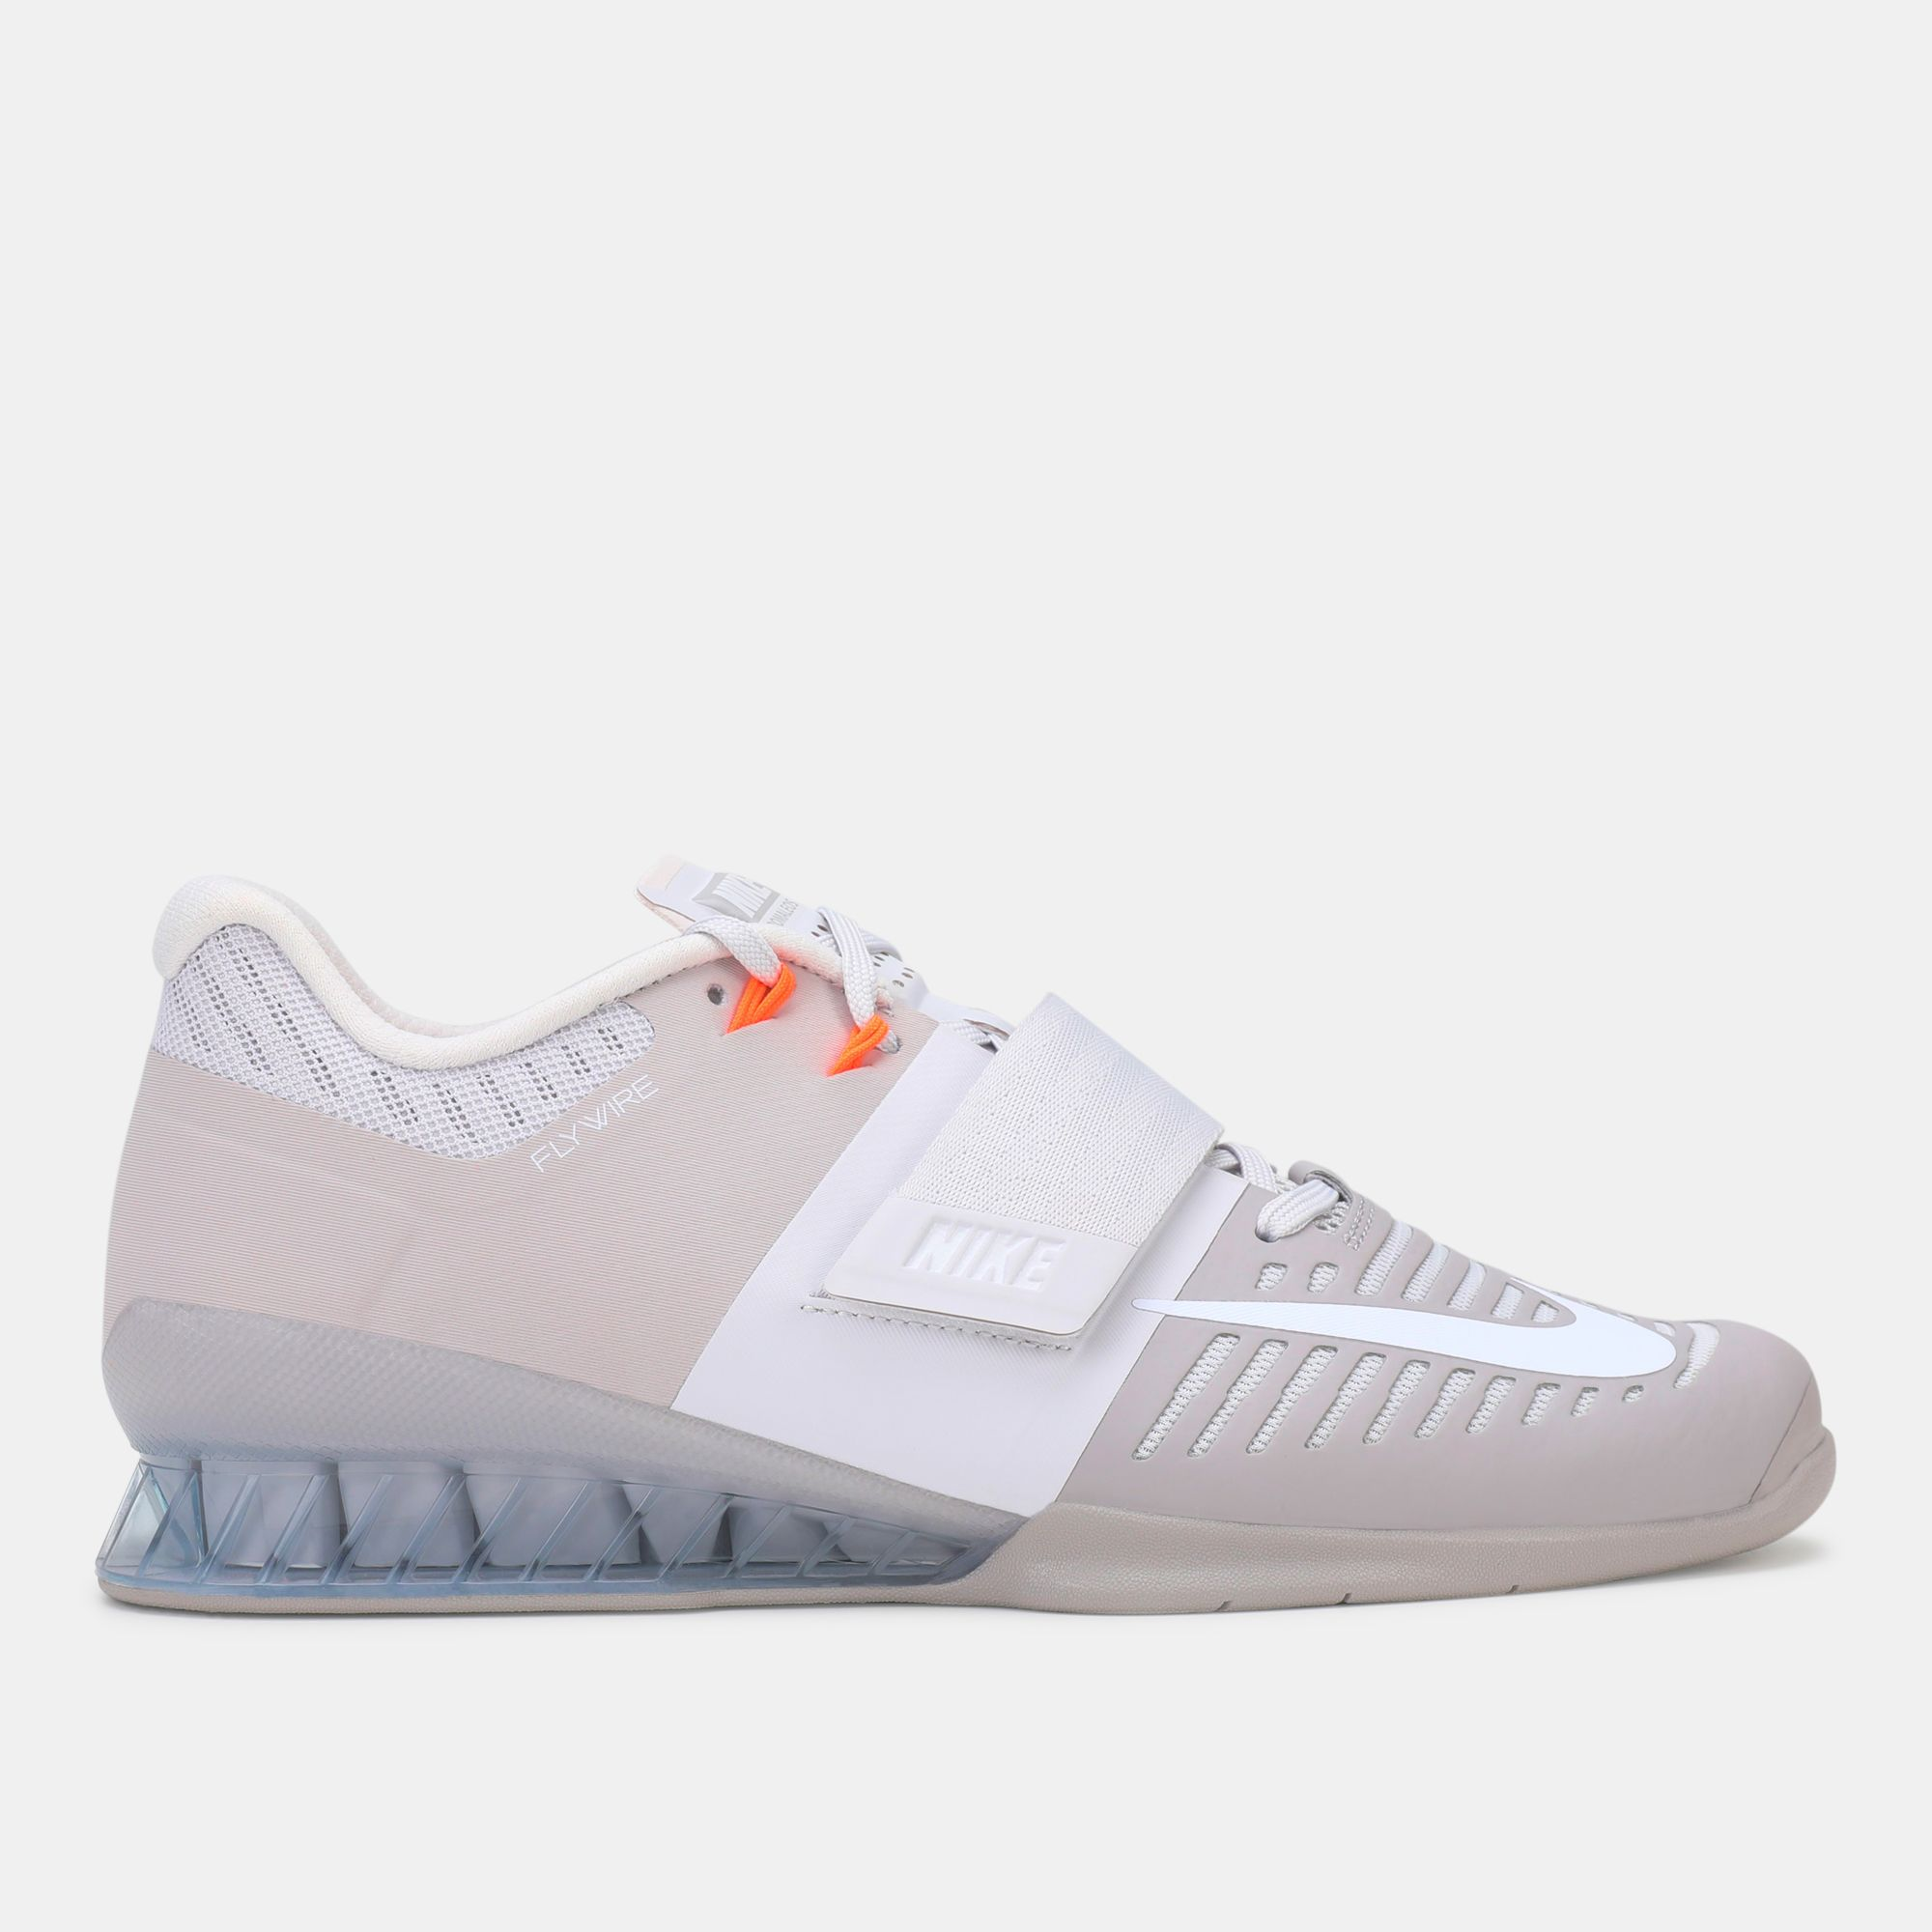 quality design ab453 fabcb Nike Romaleos 3 Weightlifting Shoe   Sports Shoes   Shoes   Mens   SSS